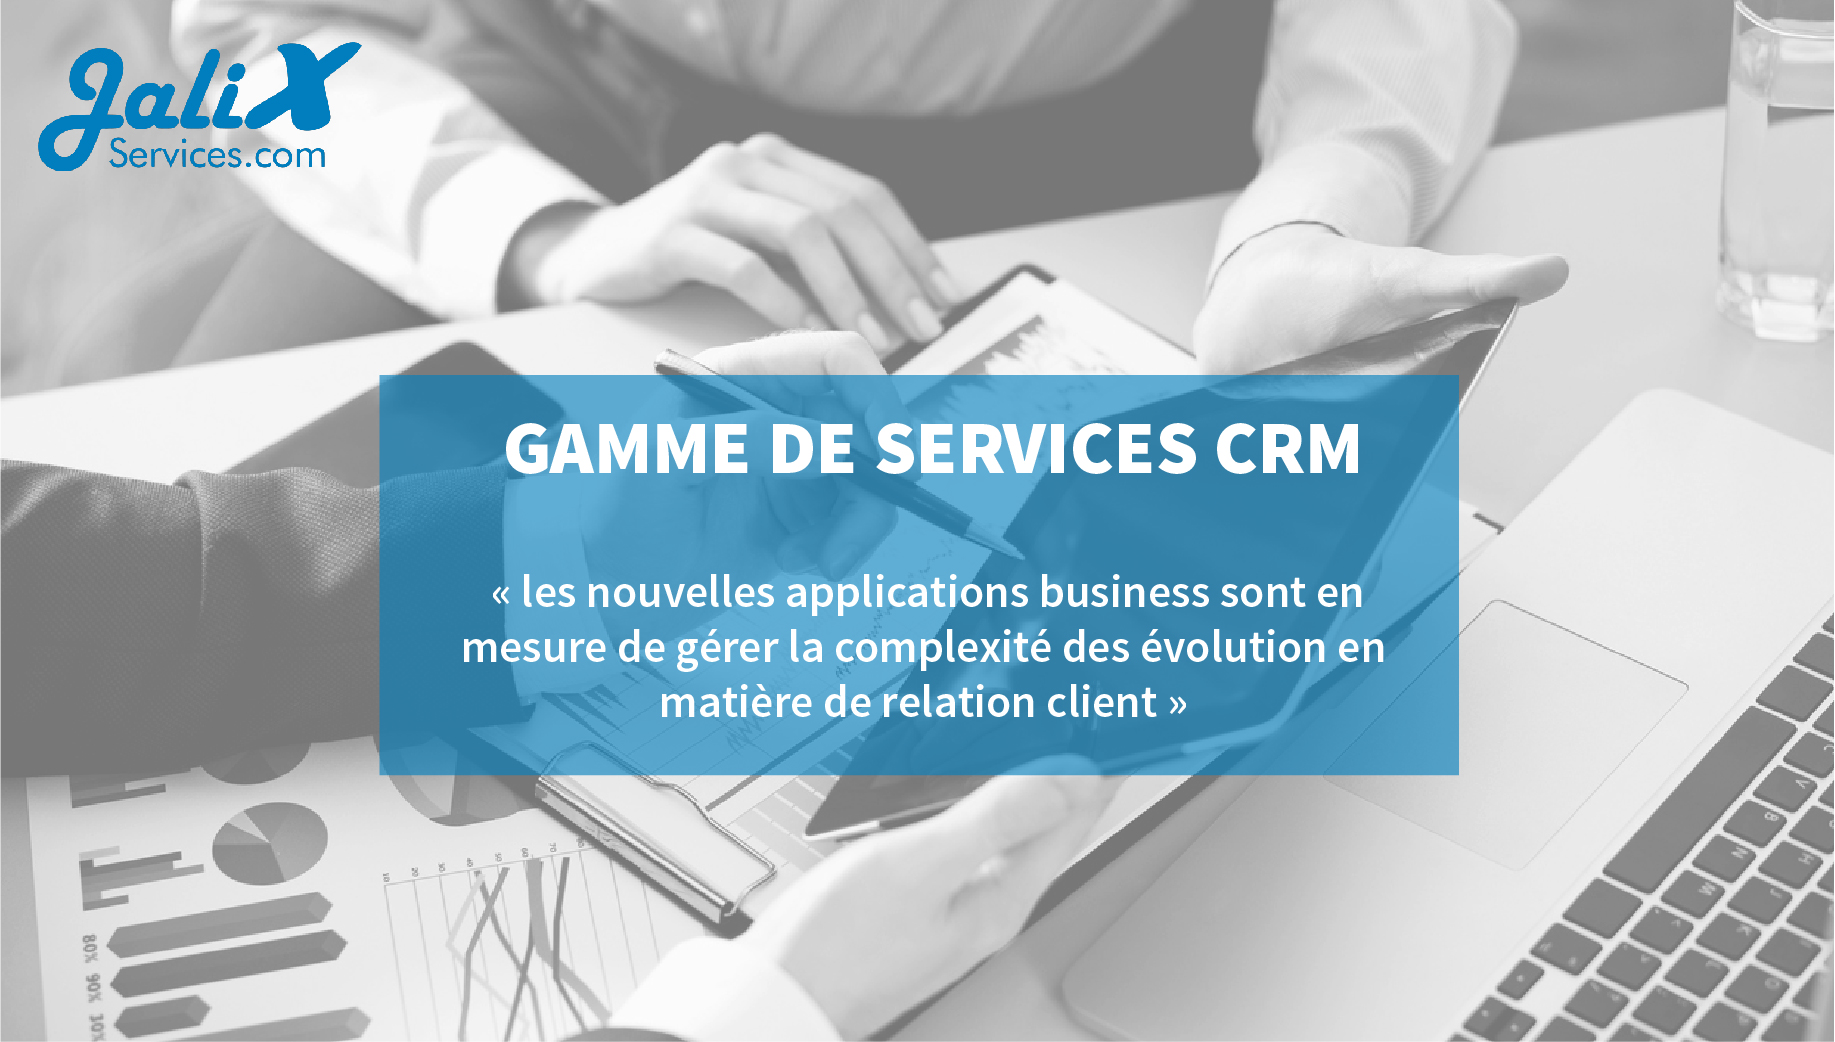 gamme crm-06